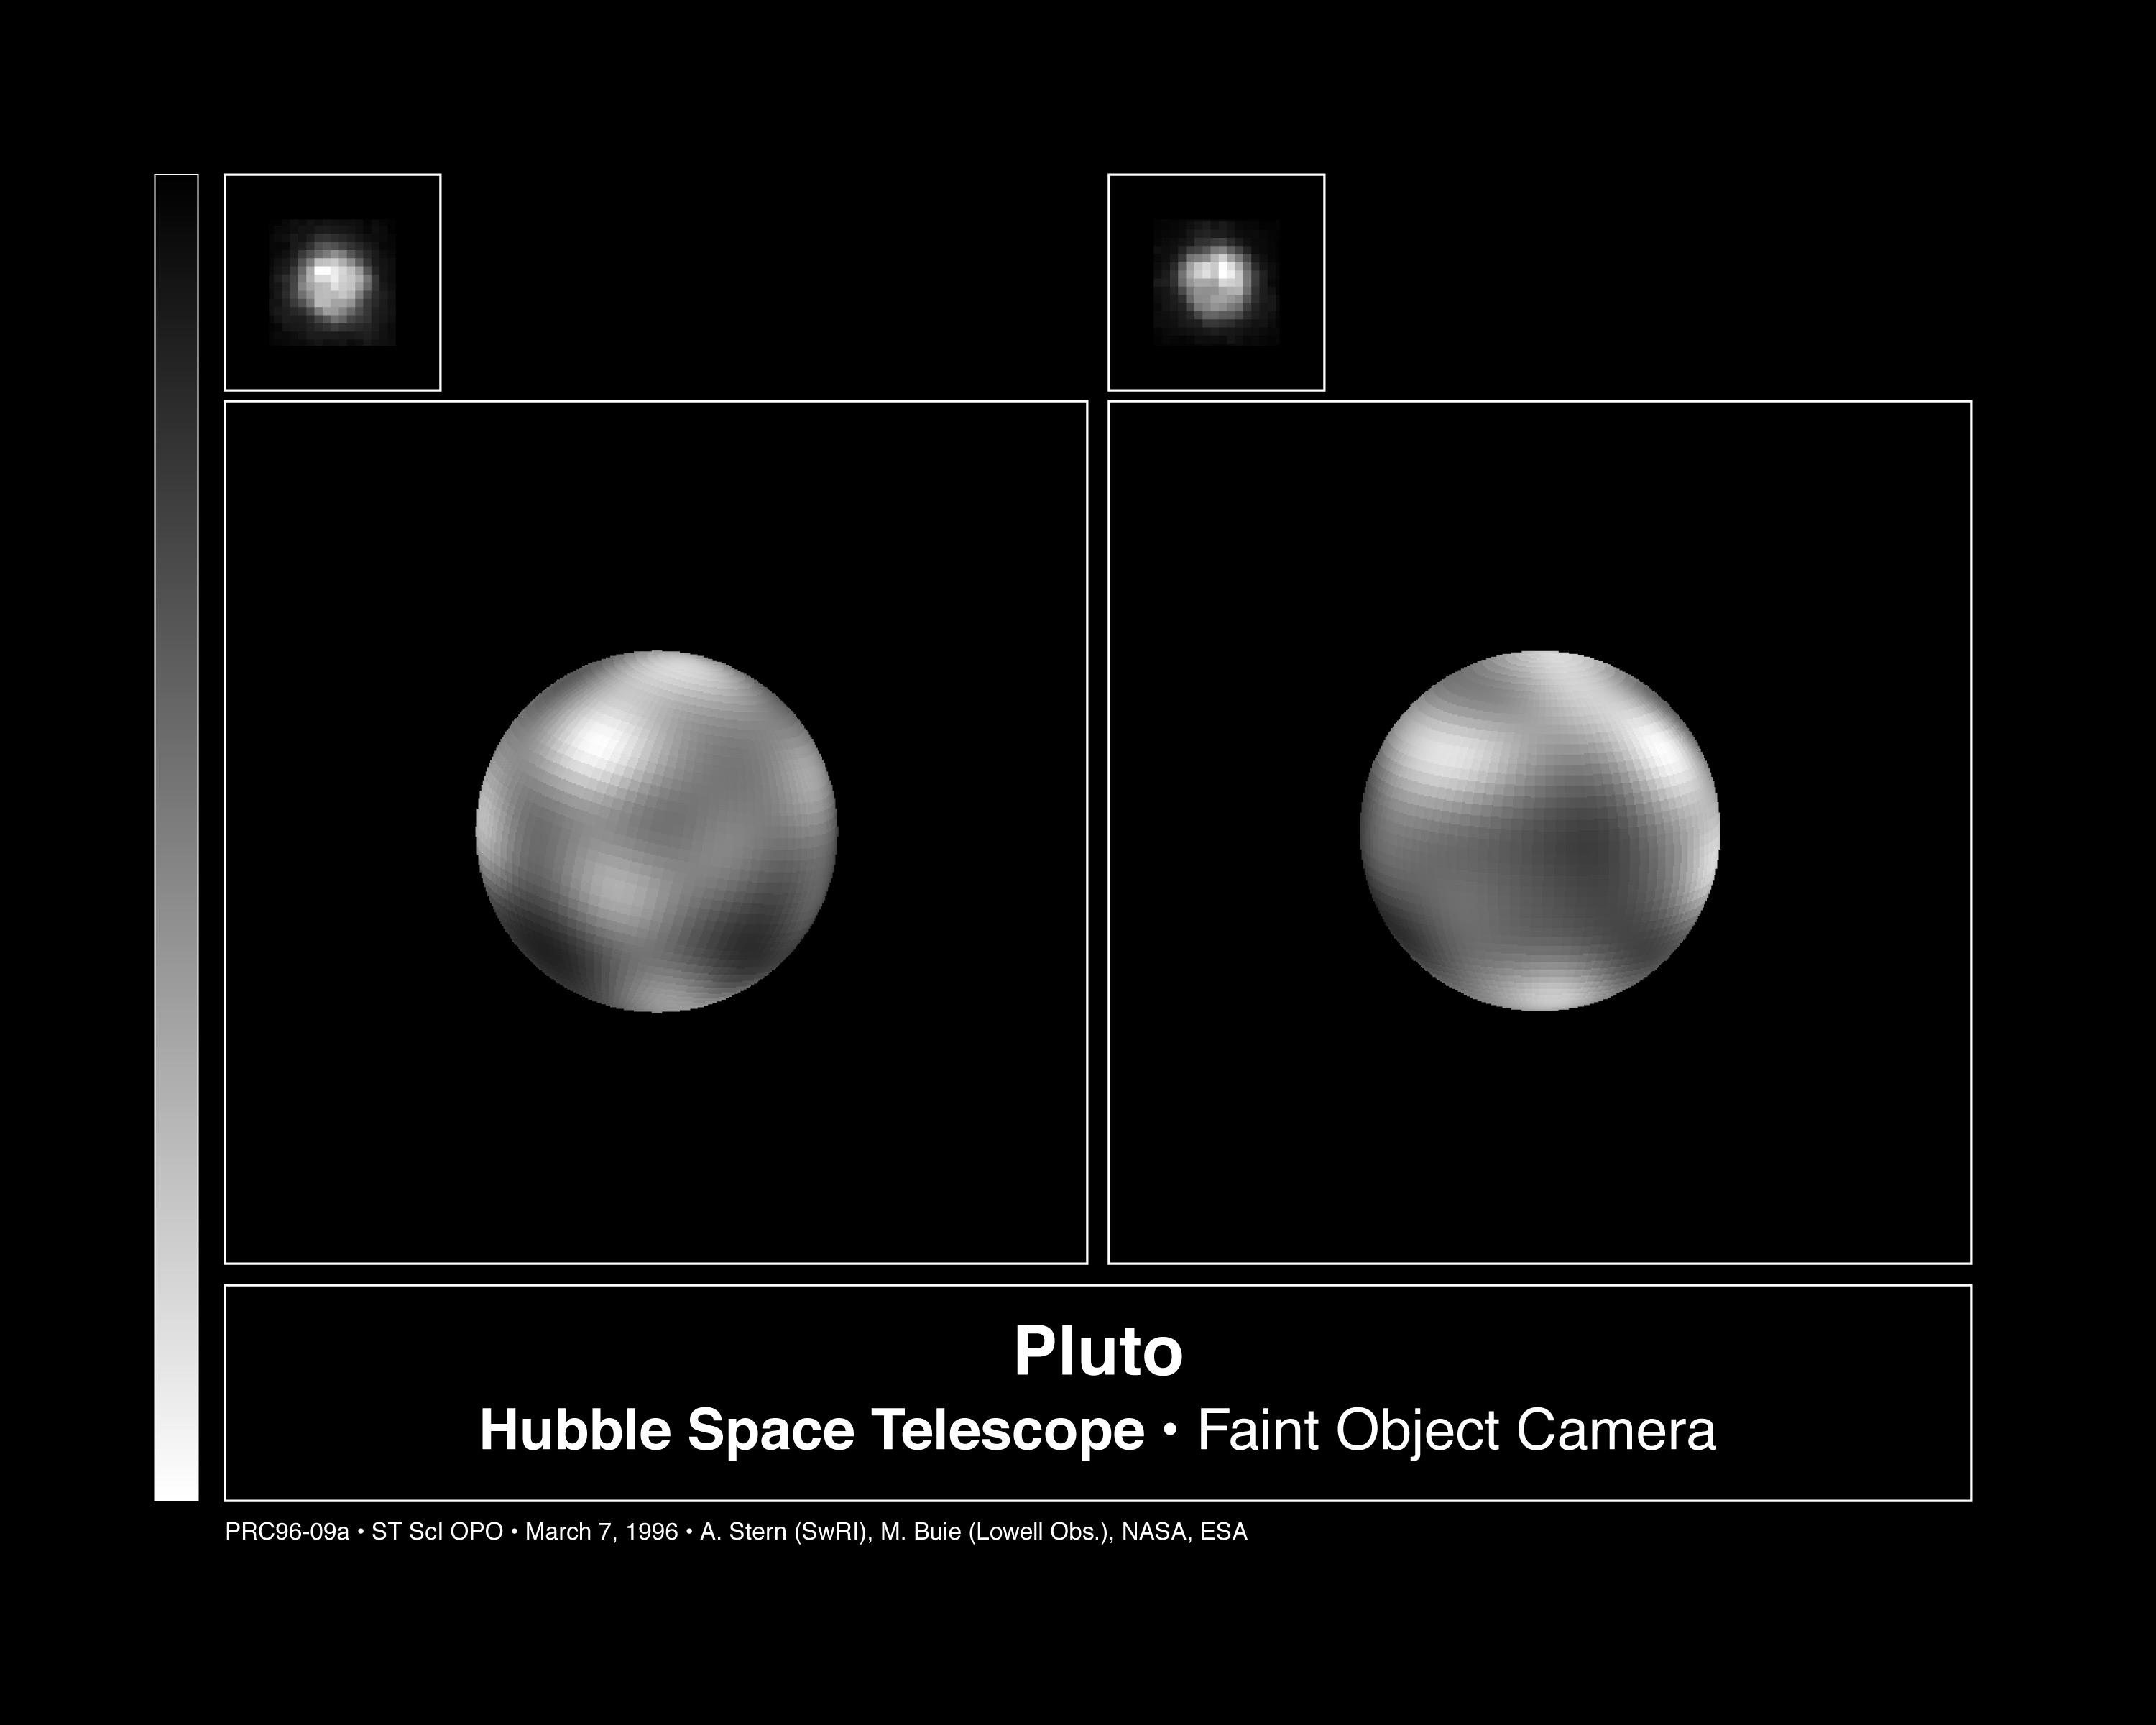 Hubble Telescope photos of Pluto